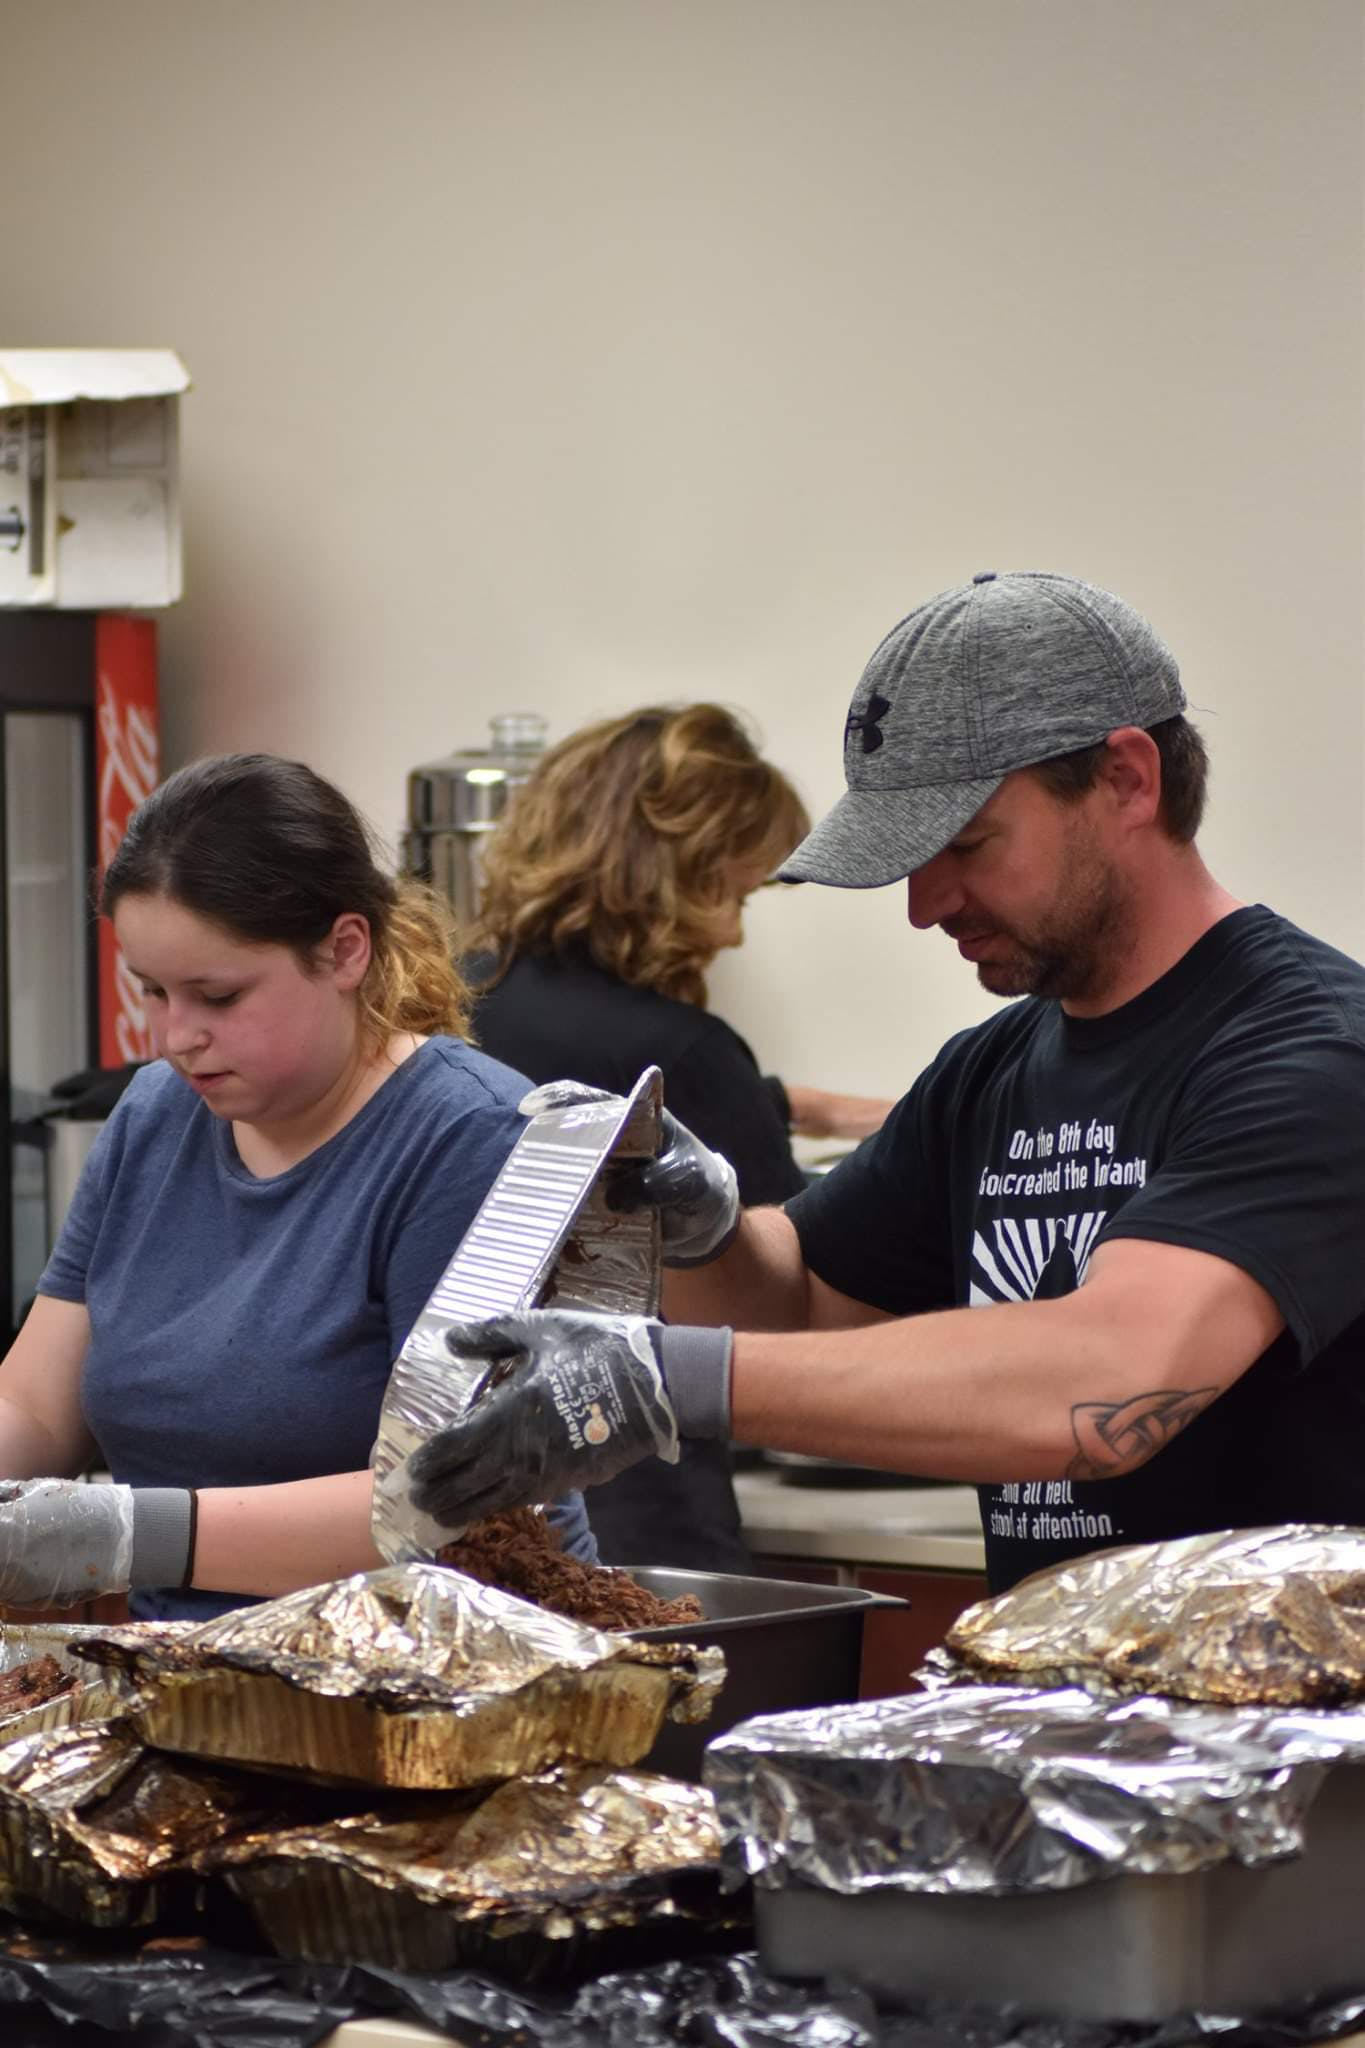 a man and woman cooking food on a table